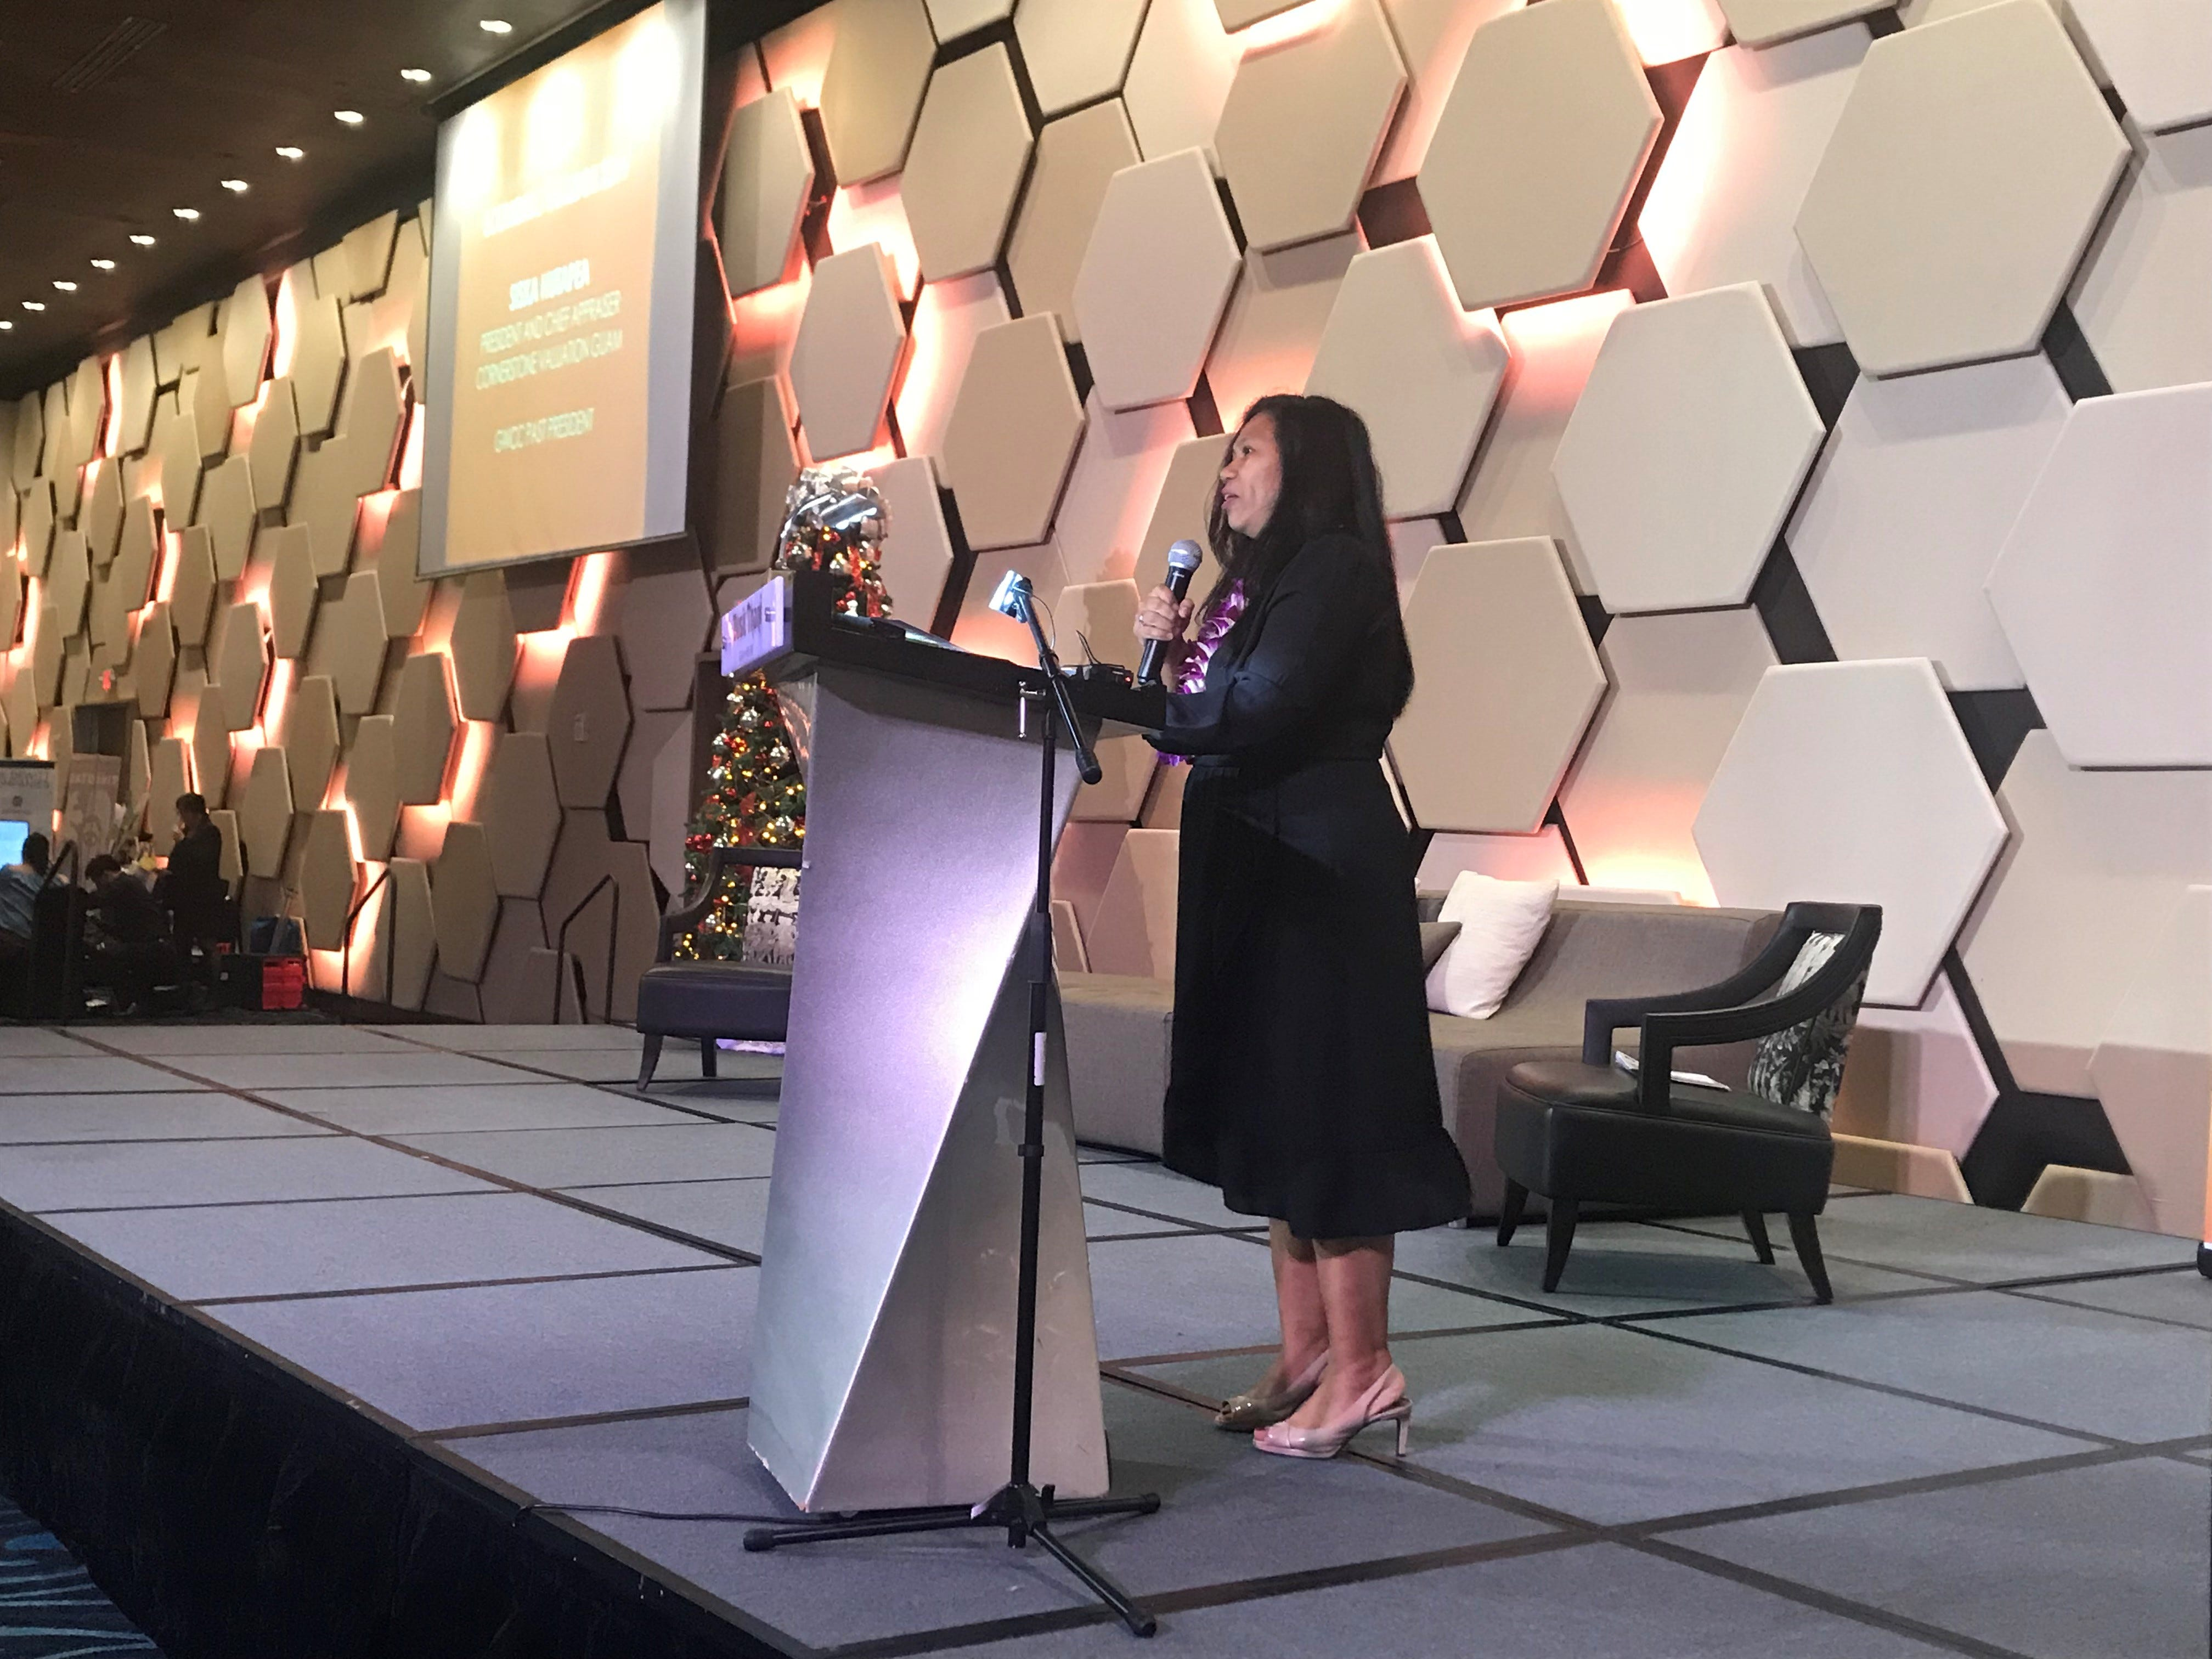 Keynote speaker Siska Hutapea discusses the economic outlook for 2019 at the Guam Women's Chamber of Commerce five year anniversary meeting, held Thursday, Dec. 6 at the Dusit Thani.